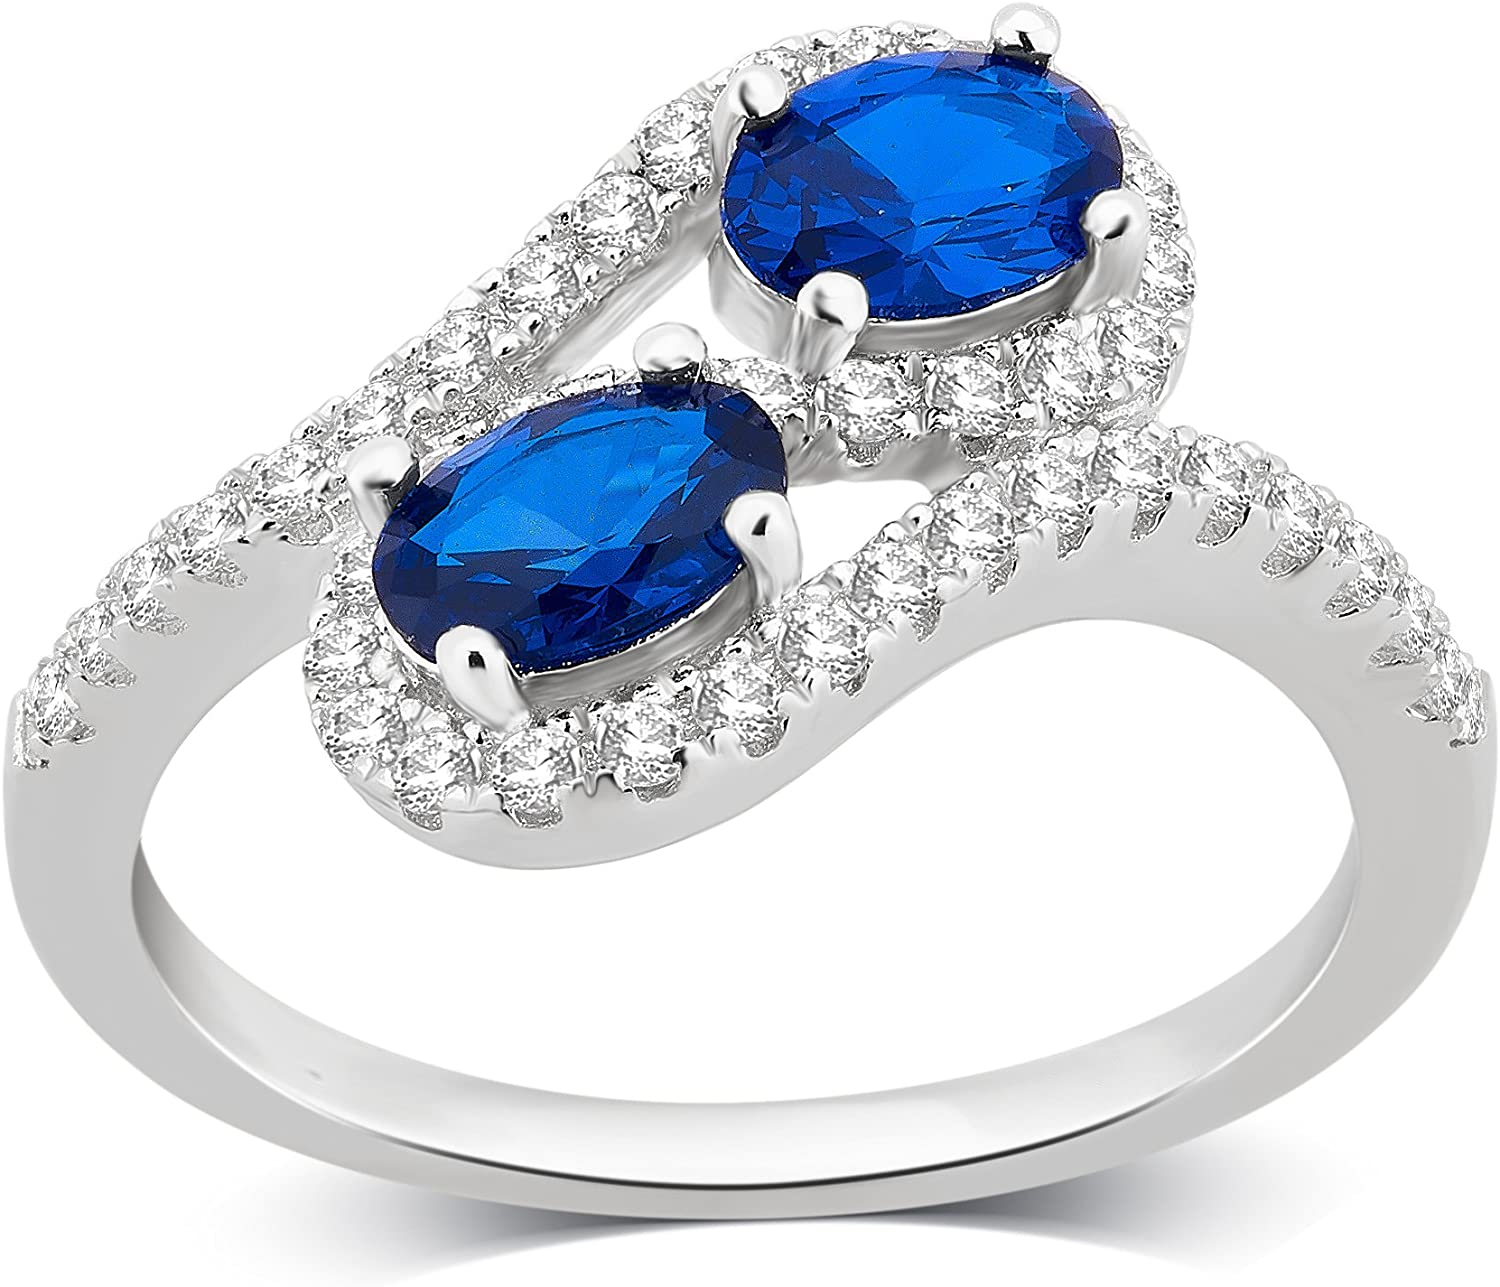 2 Stone Blue and White Sapphire Ring in Sterling Silver